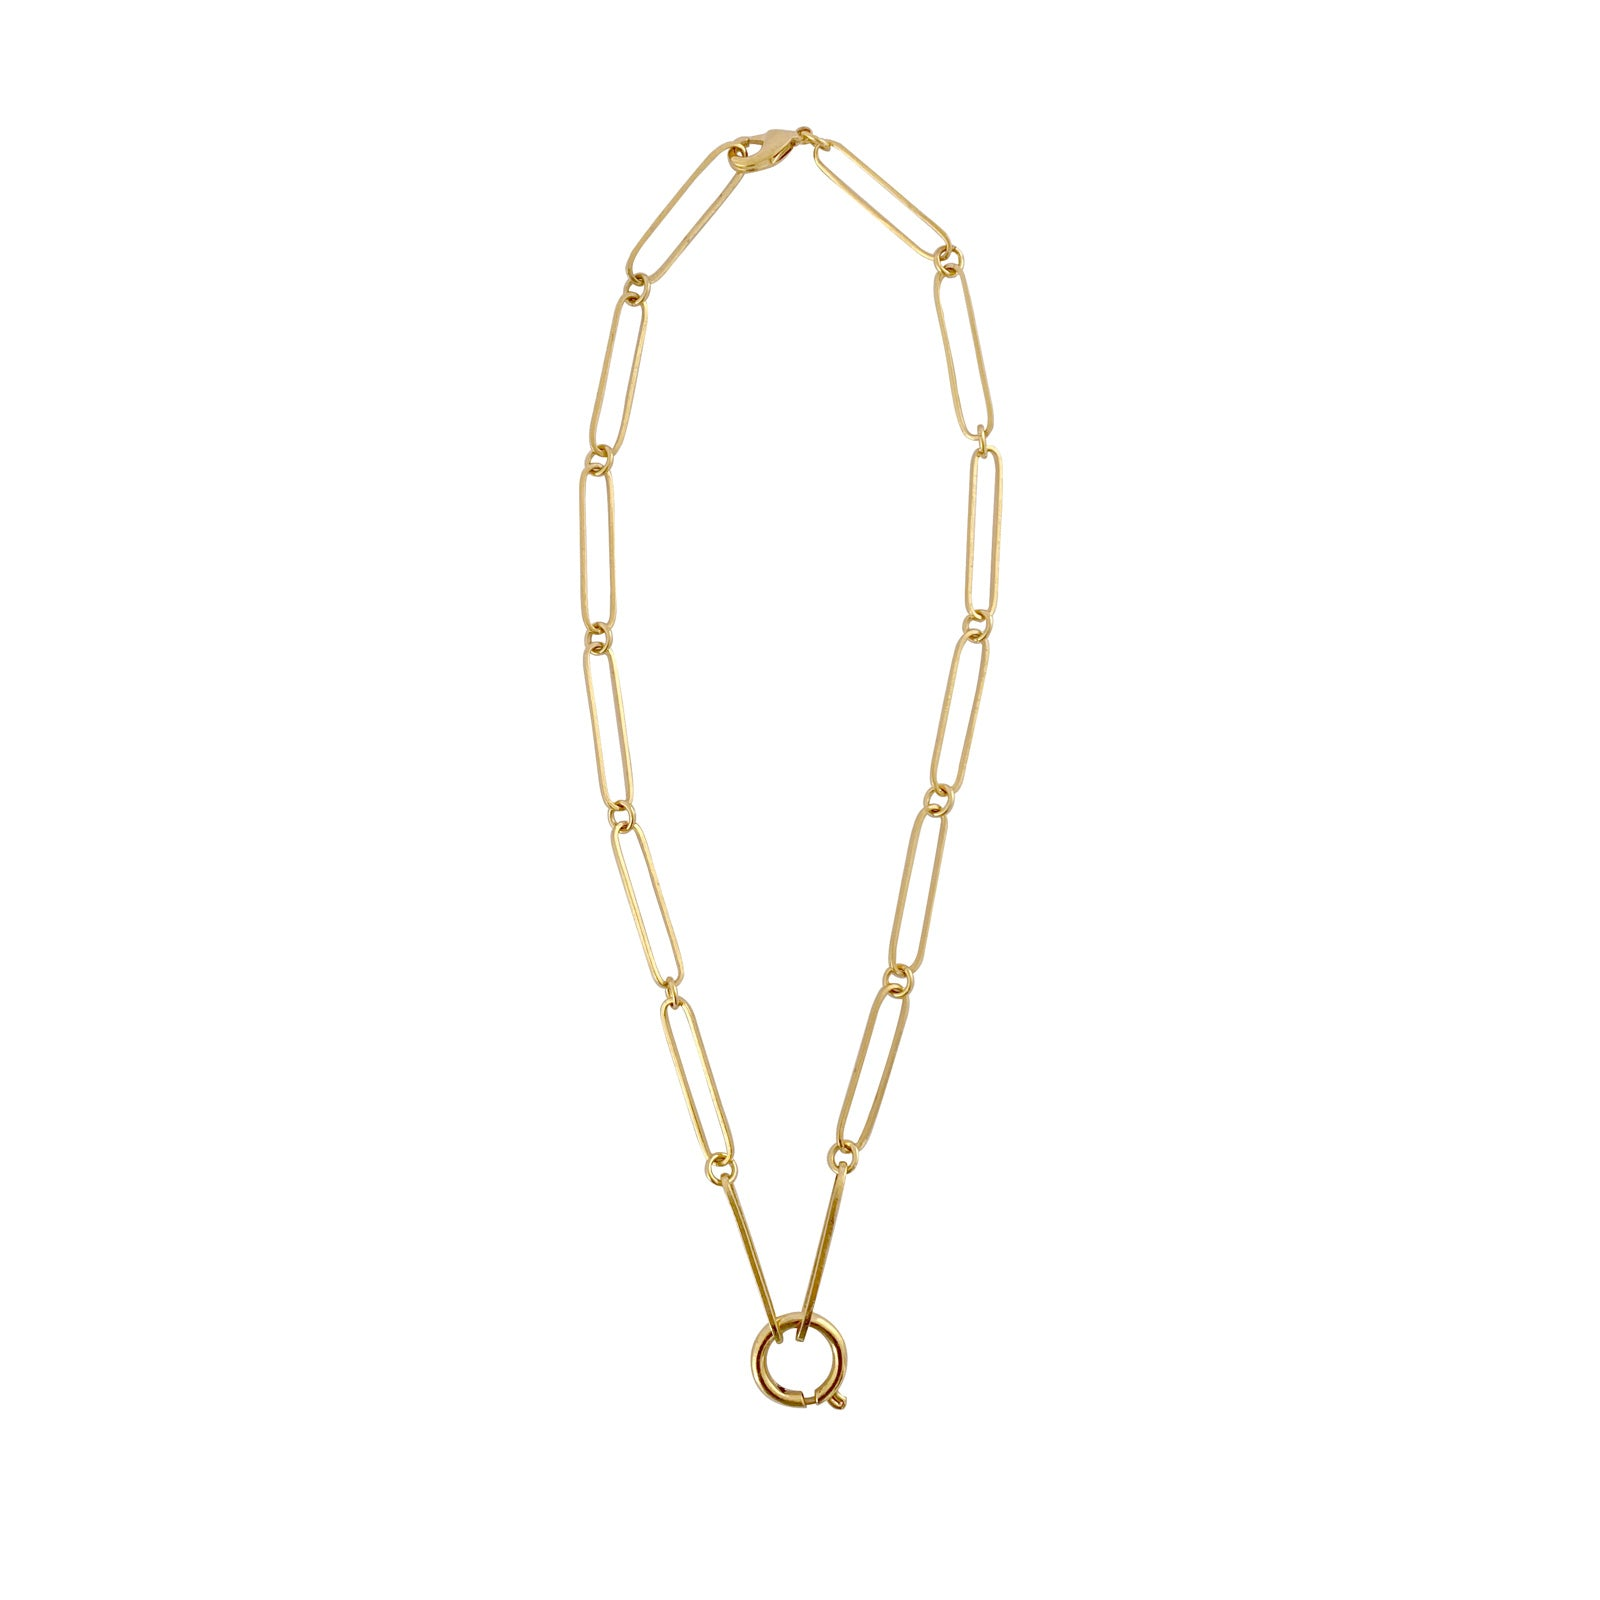 Gold plated  mystical chain elongated link ana buendia colombian jewelry